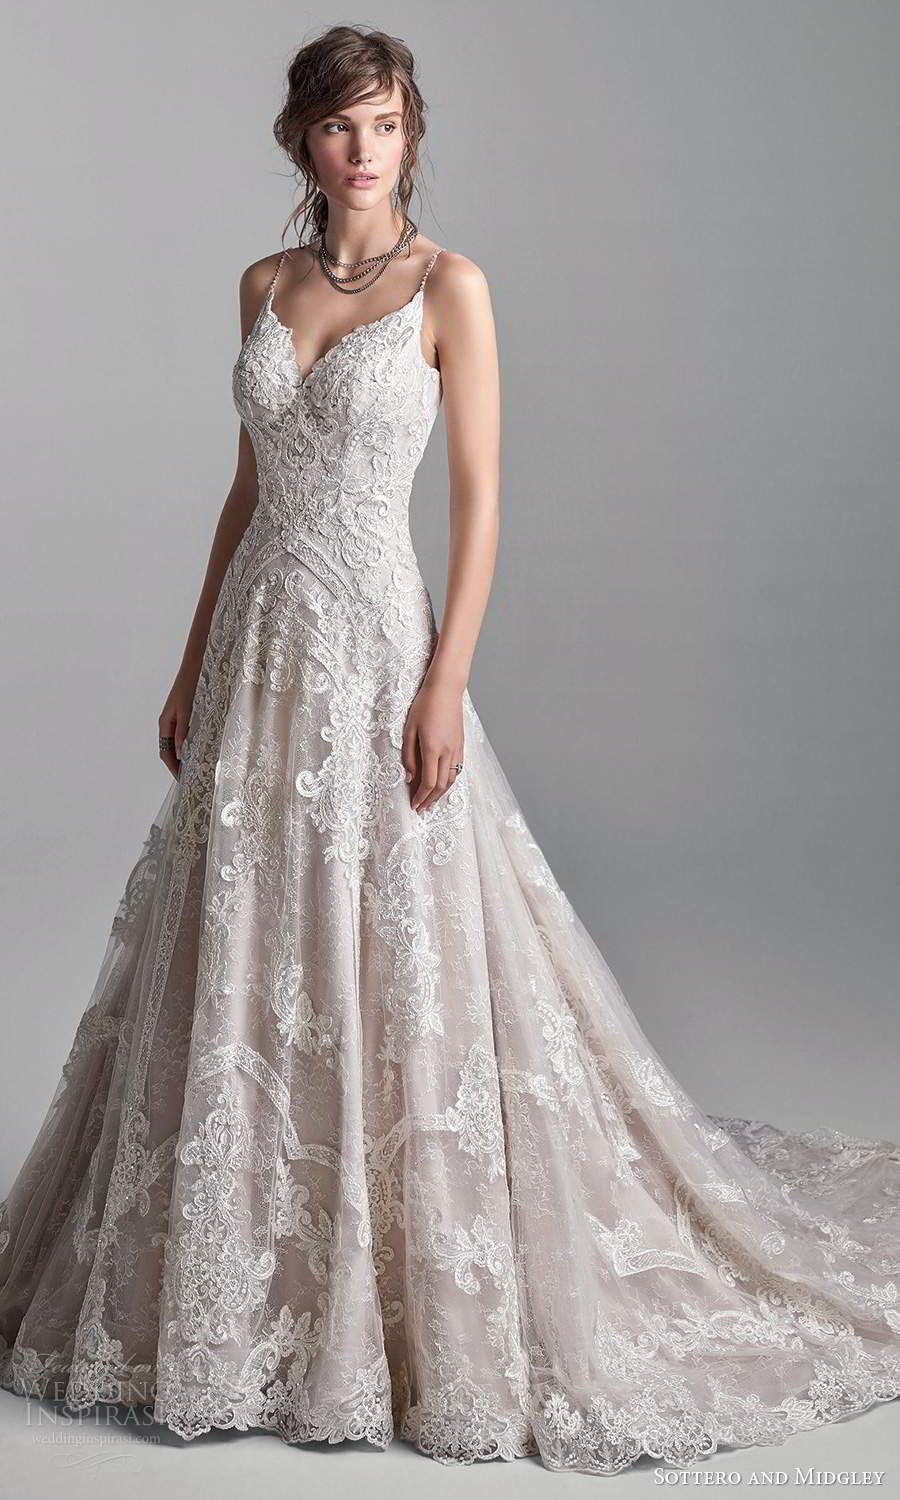 sottero midgley fall 2020 bridal sleeveless thing straps plunging sweetheart neckline fully embellished a line ball gown wedding dress chapel train blush (14) mv